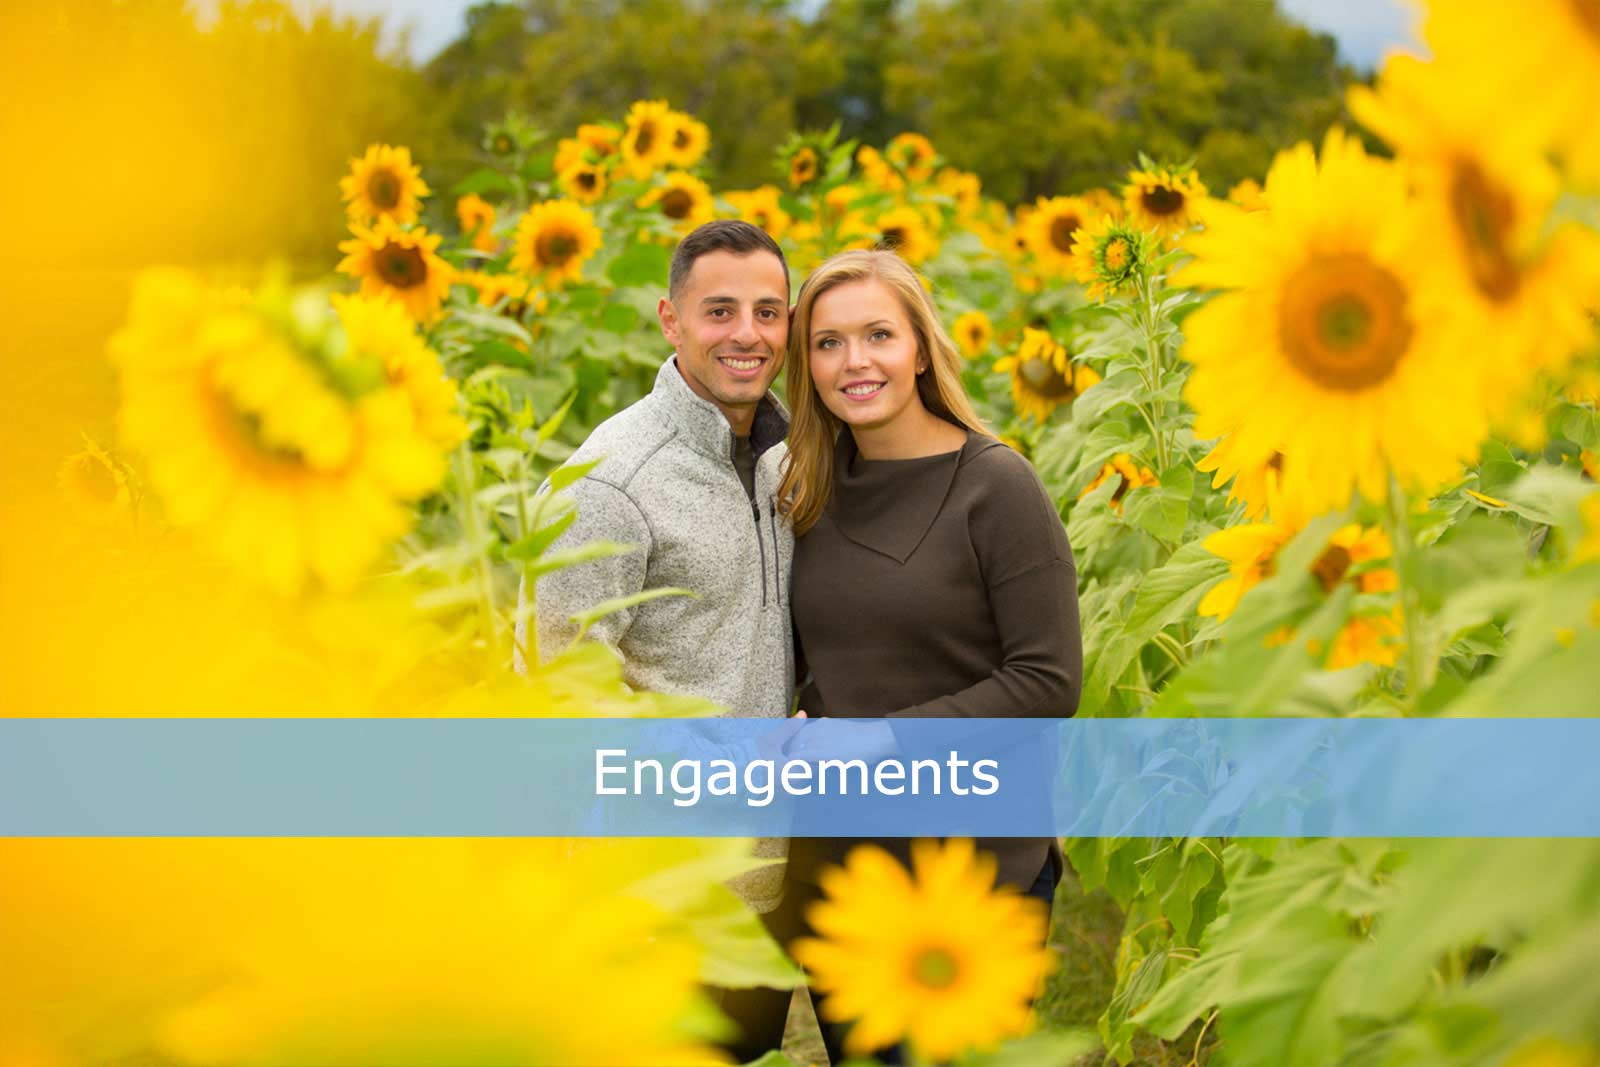 Engagement Photography by CT Photo Group